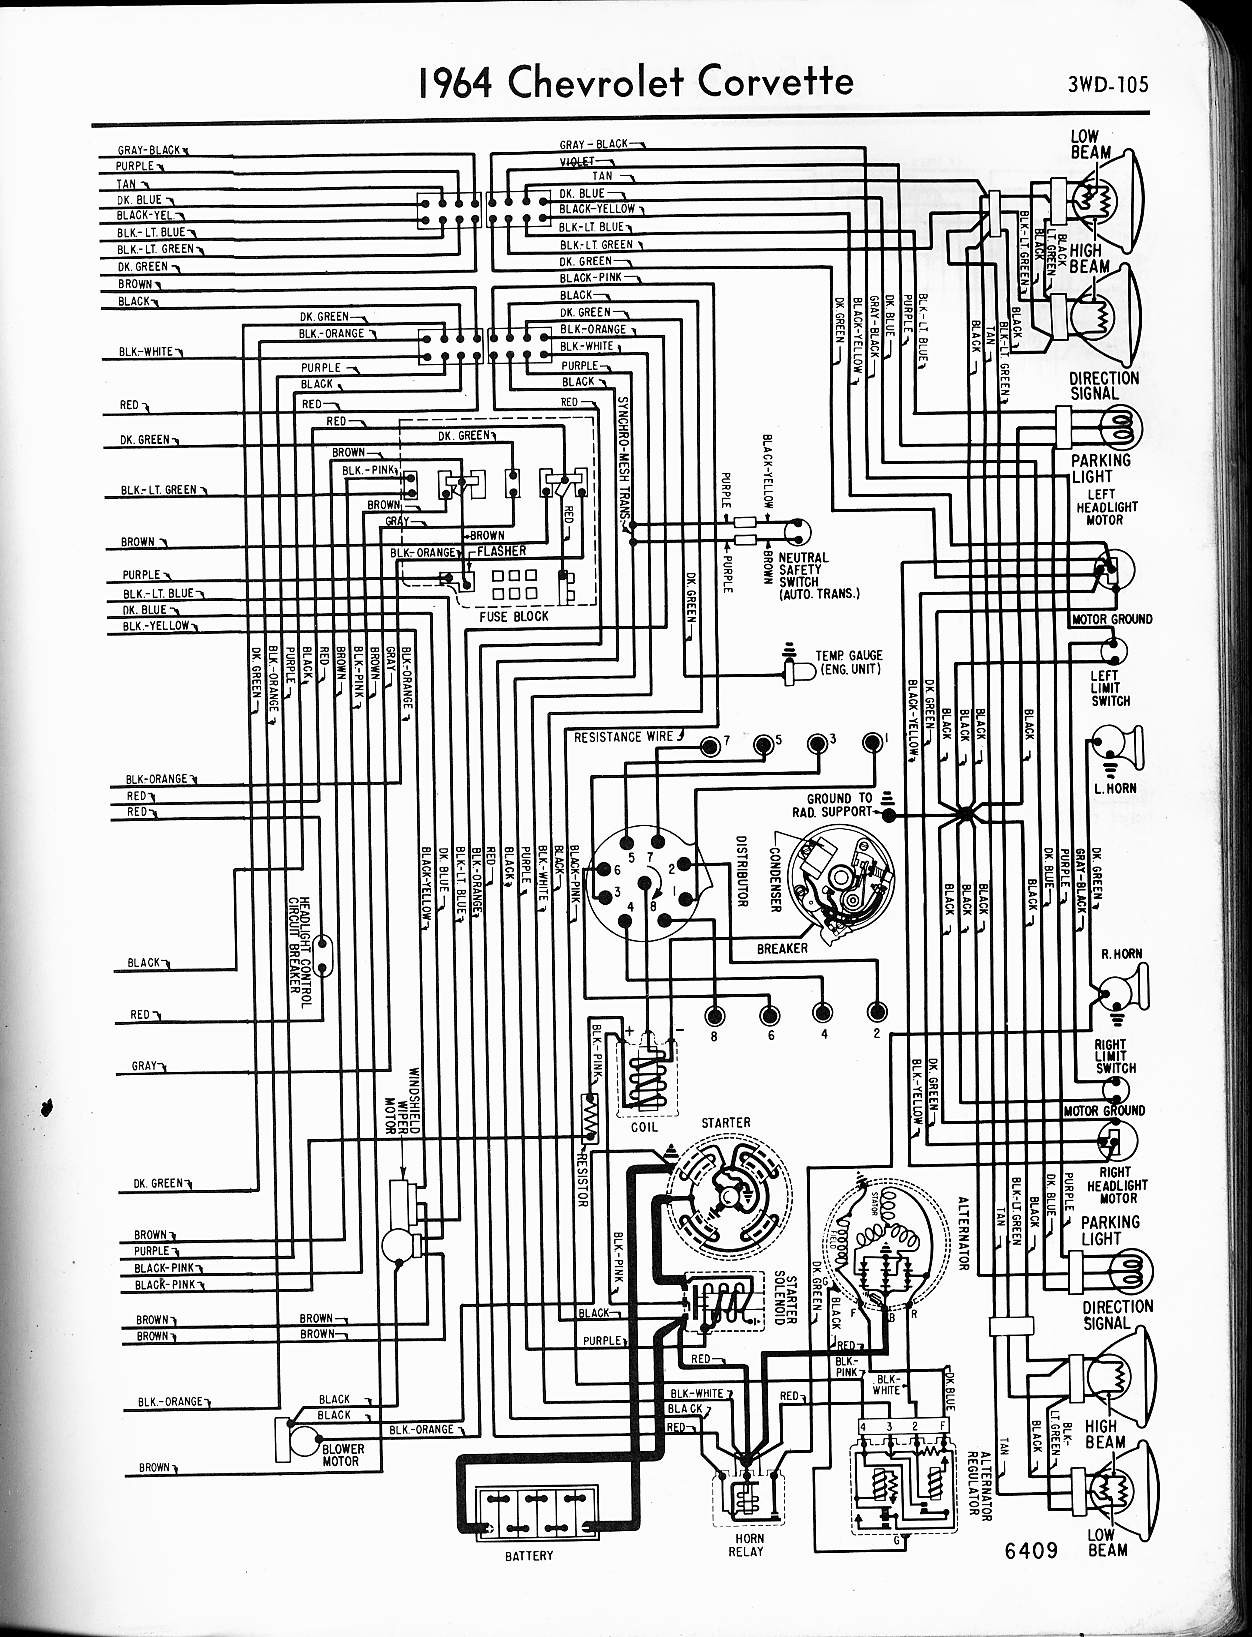 1972 scout ii wiring diagram wiring library 1975 international wiring schematic 1972 scout ii wiring diagram [ 1252 x 1637 Pixel ]